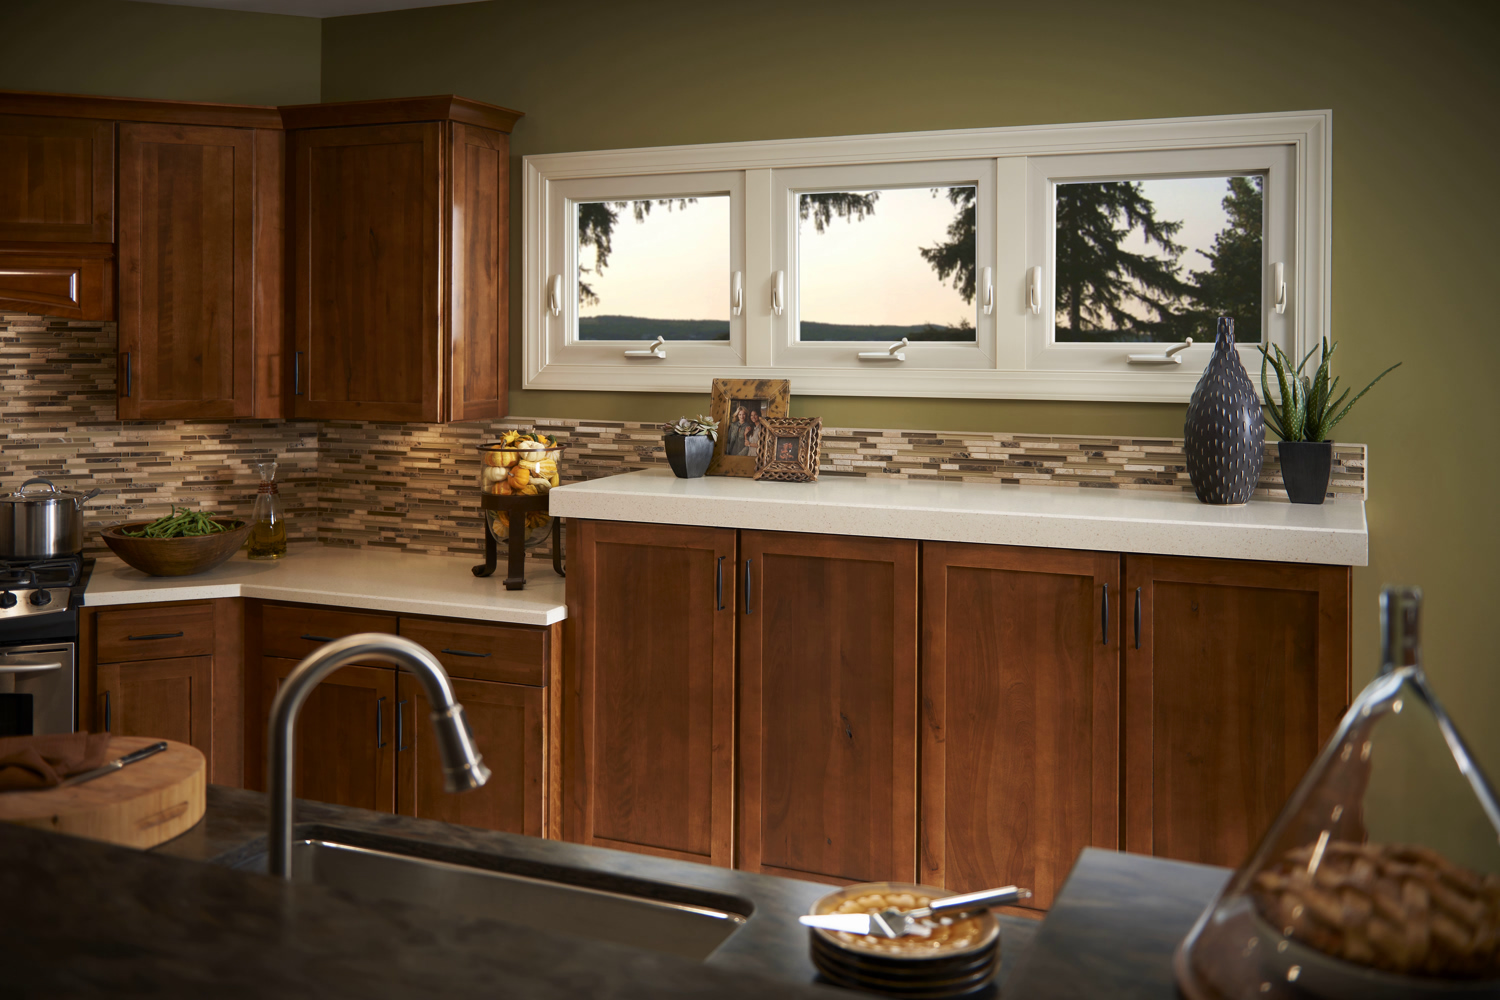 Simonton-Reflections-Awning-Window-Kitchen1